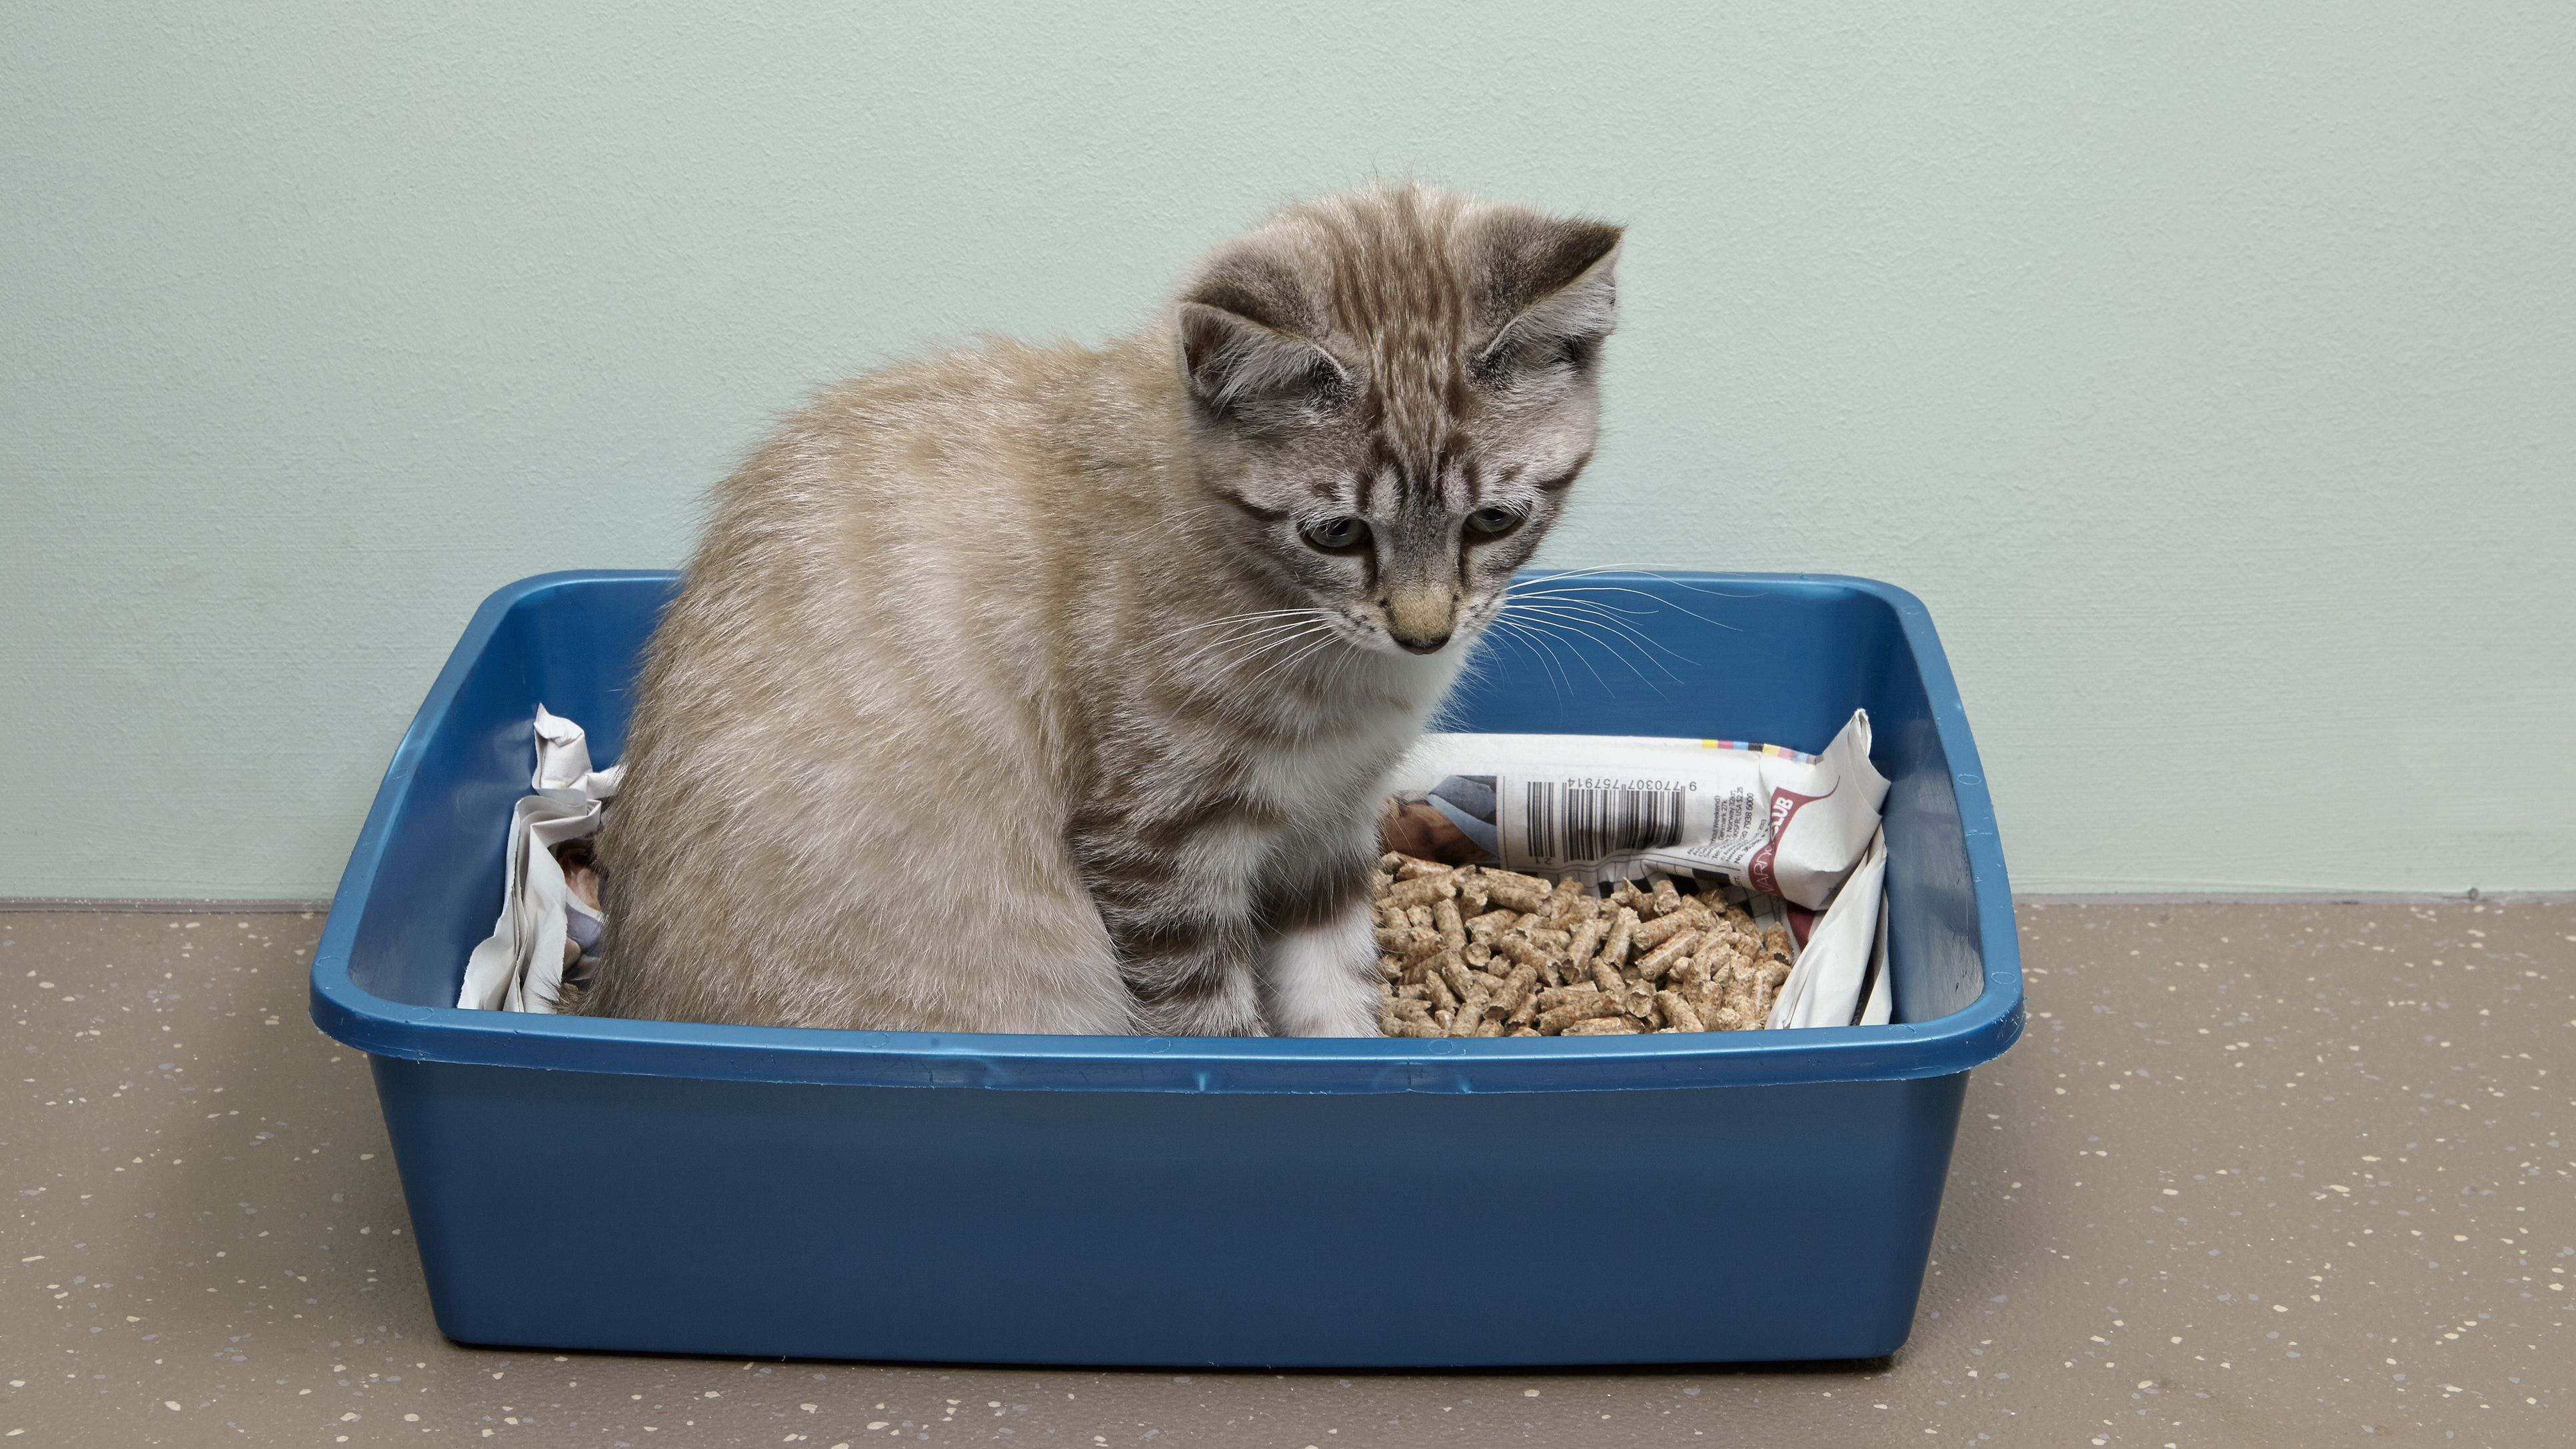 Training Kittens To Use The Litter Box